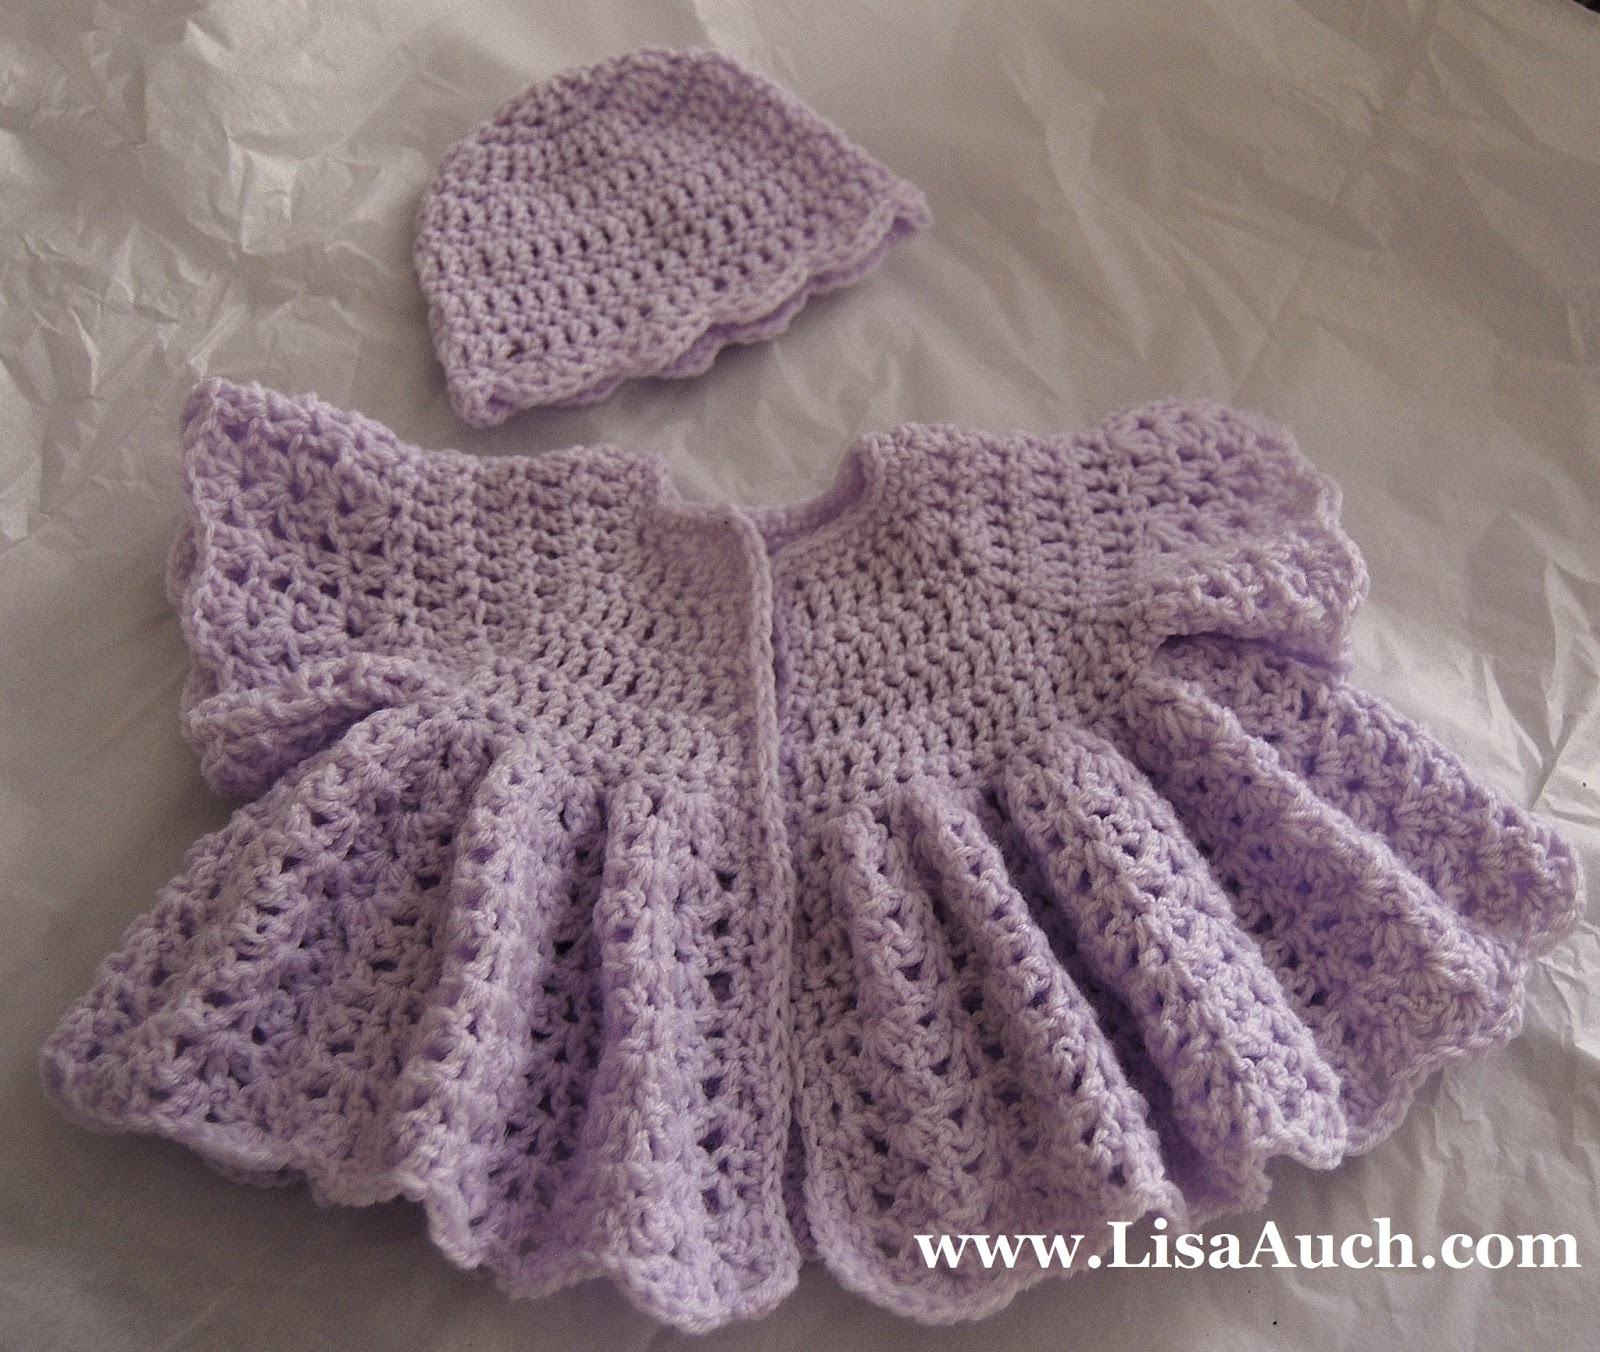 Free Crochet Baby Hat Patterns : Free Crochet Patterns-crochet baby layette patterns-baby sweater ...